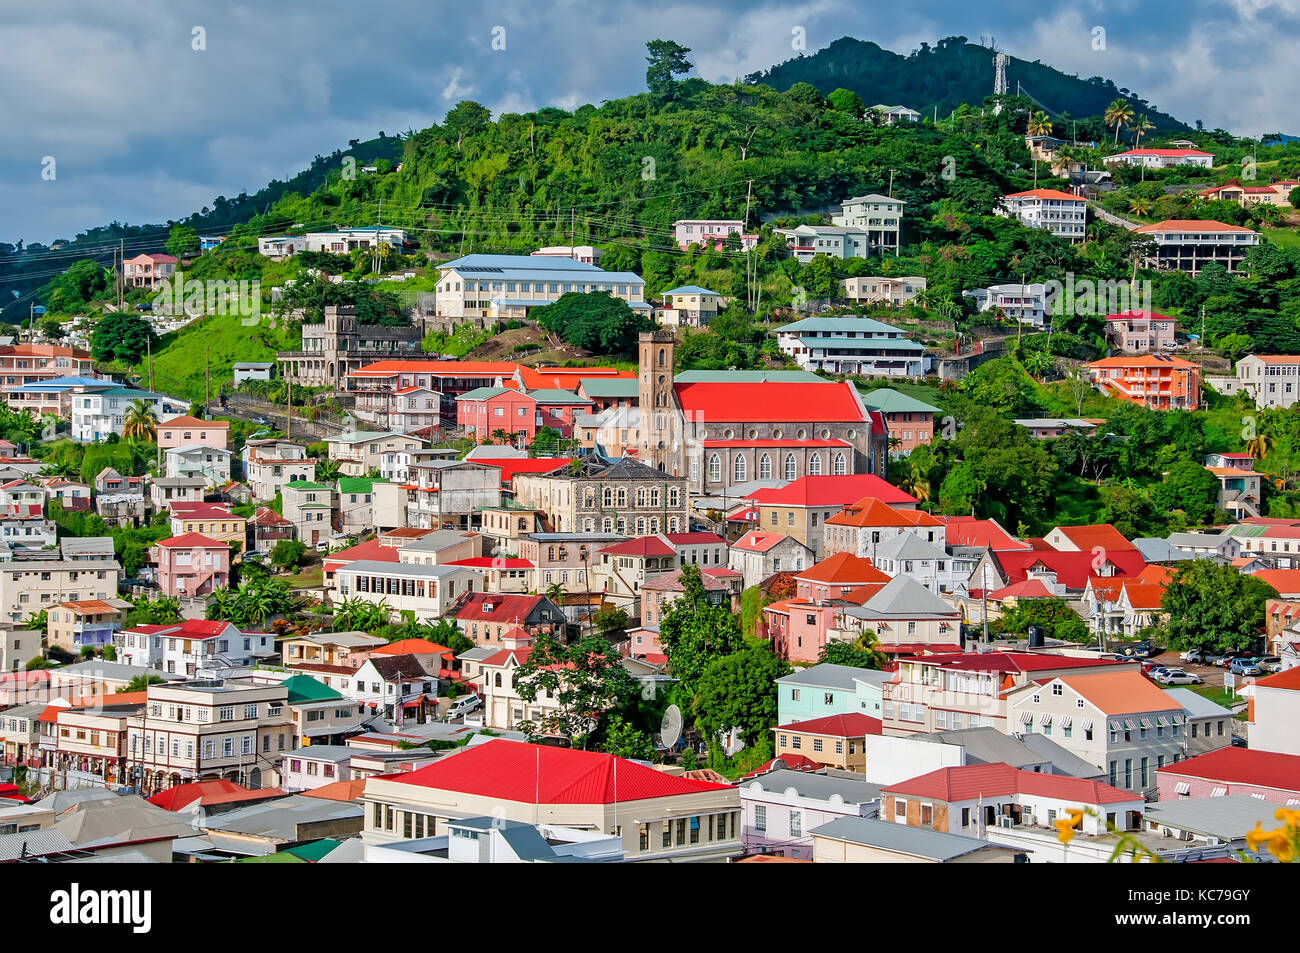 Colorful buildings and architecture of St. George's, Grenada - Stock Image